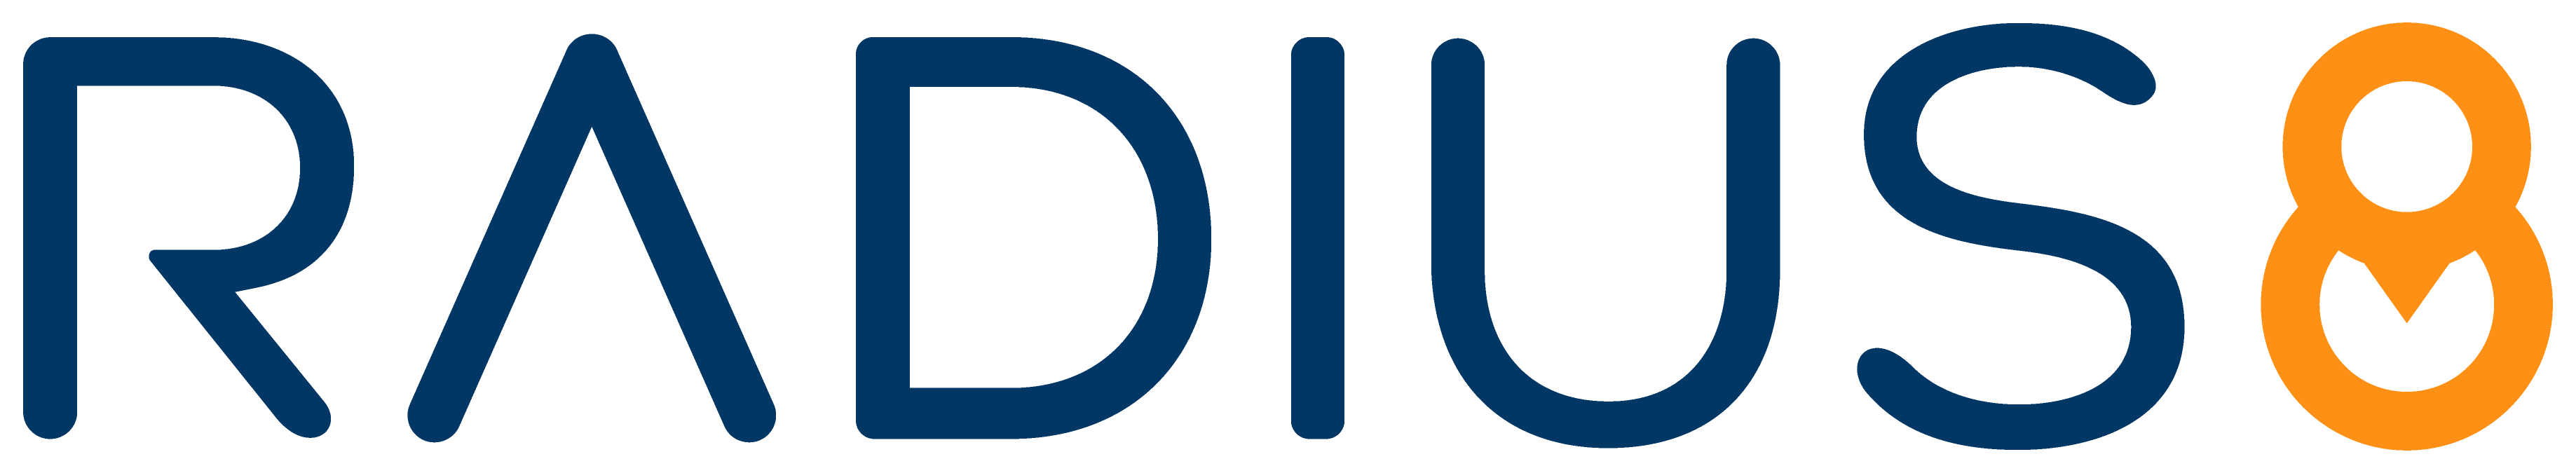 Radius8_logo_blue-orange.png